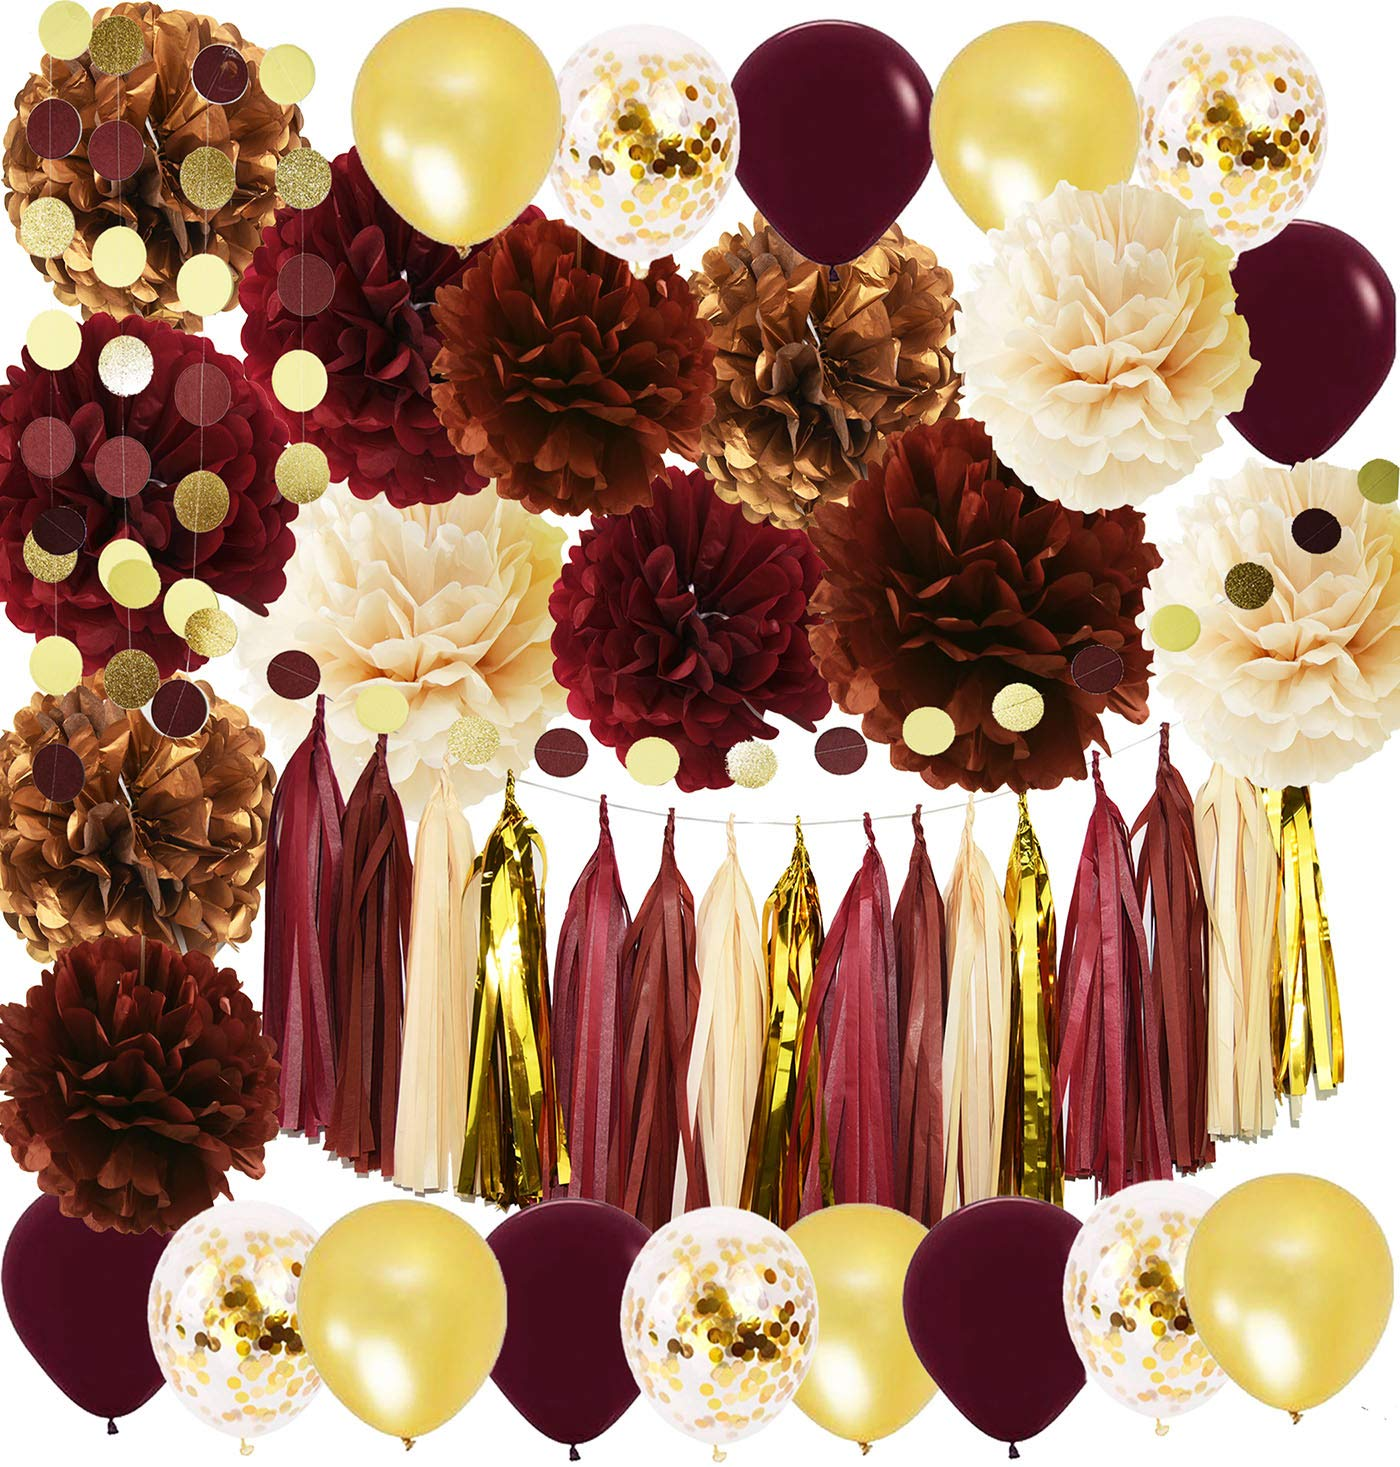 Wine Burgundy Champagne Gold Bridal Shower Decorations/Fall Wedding Decorations Big Size Burgundy Tissue Pom Pom Maroon Gold Balloons Burgundy Wedding/Women 30th/50th Birthday Party Decorations